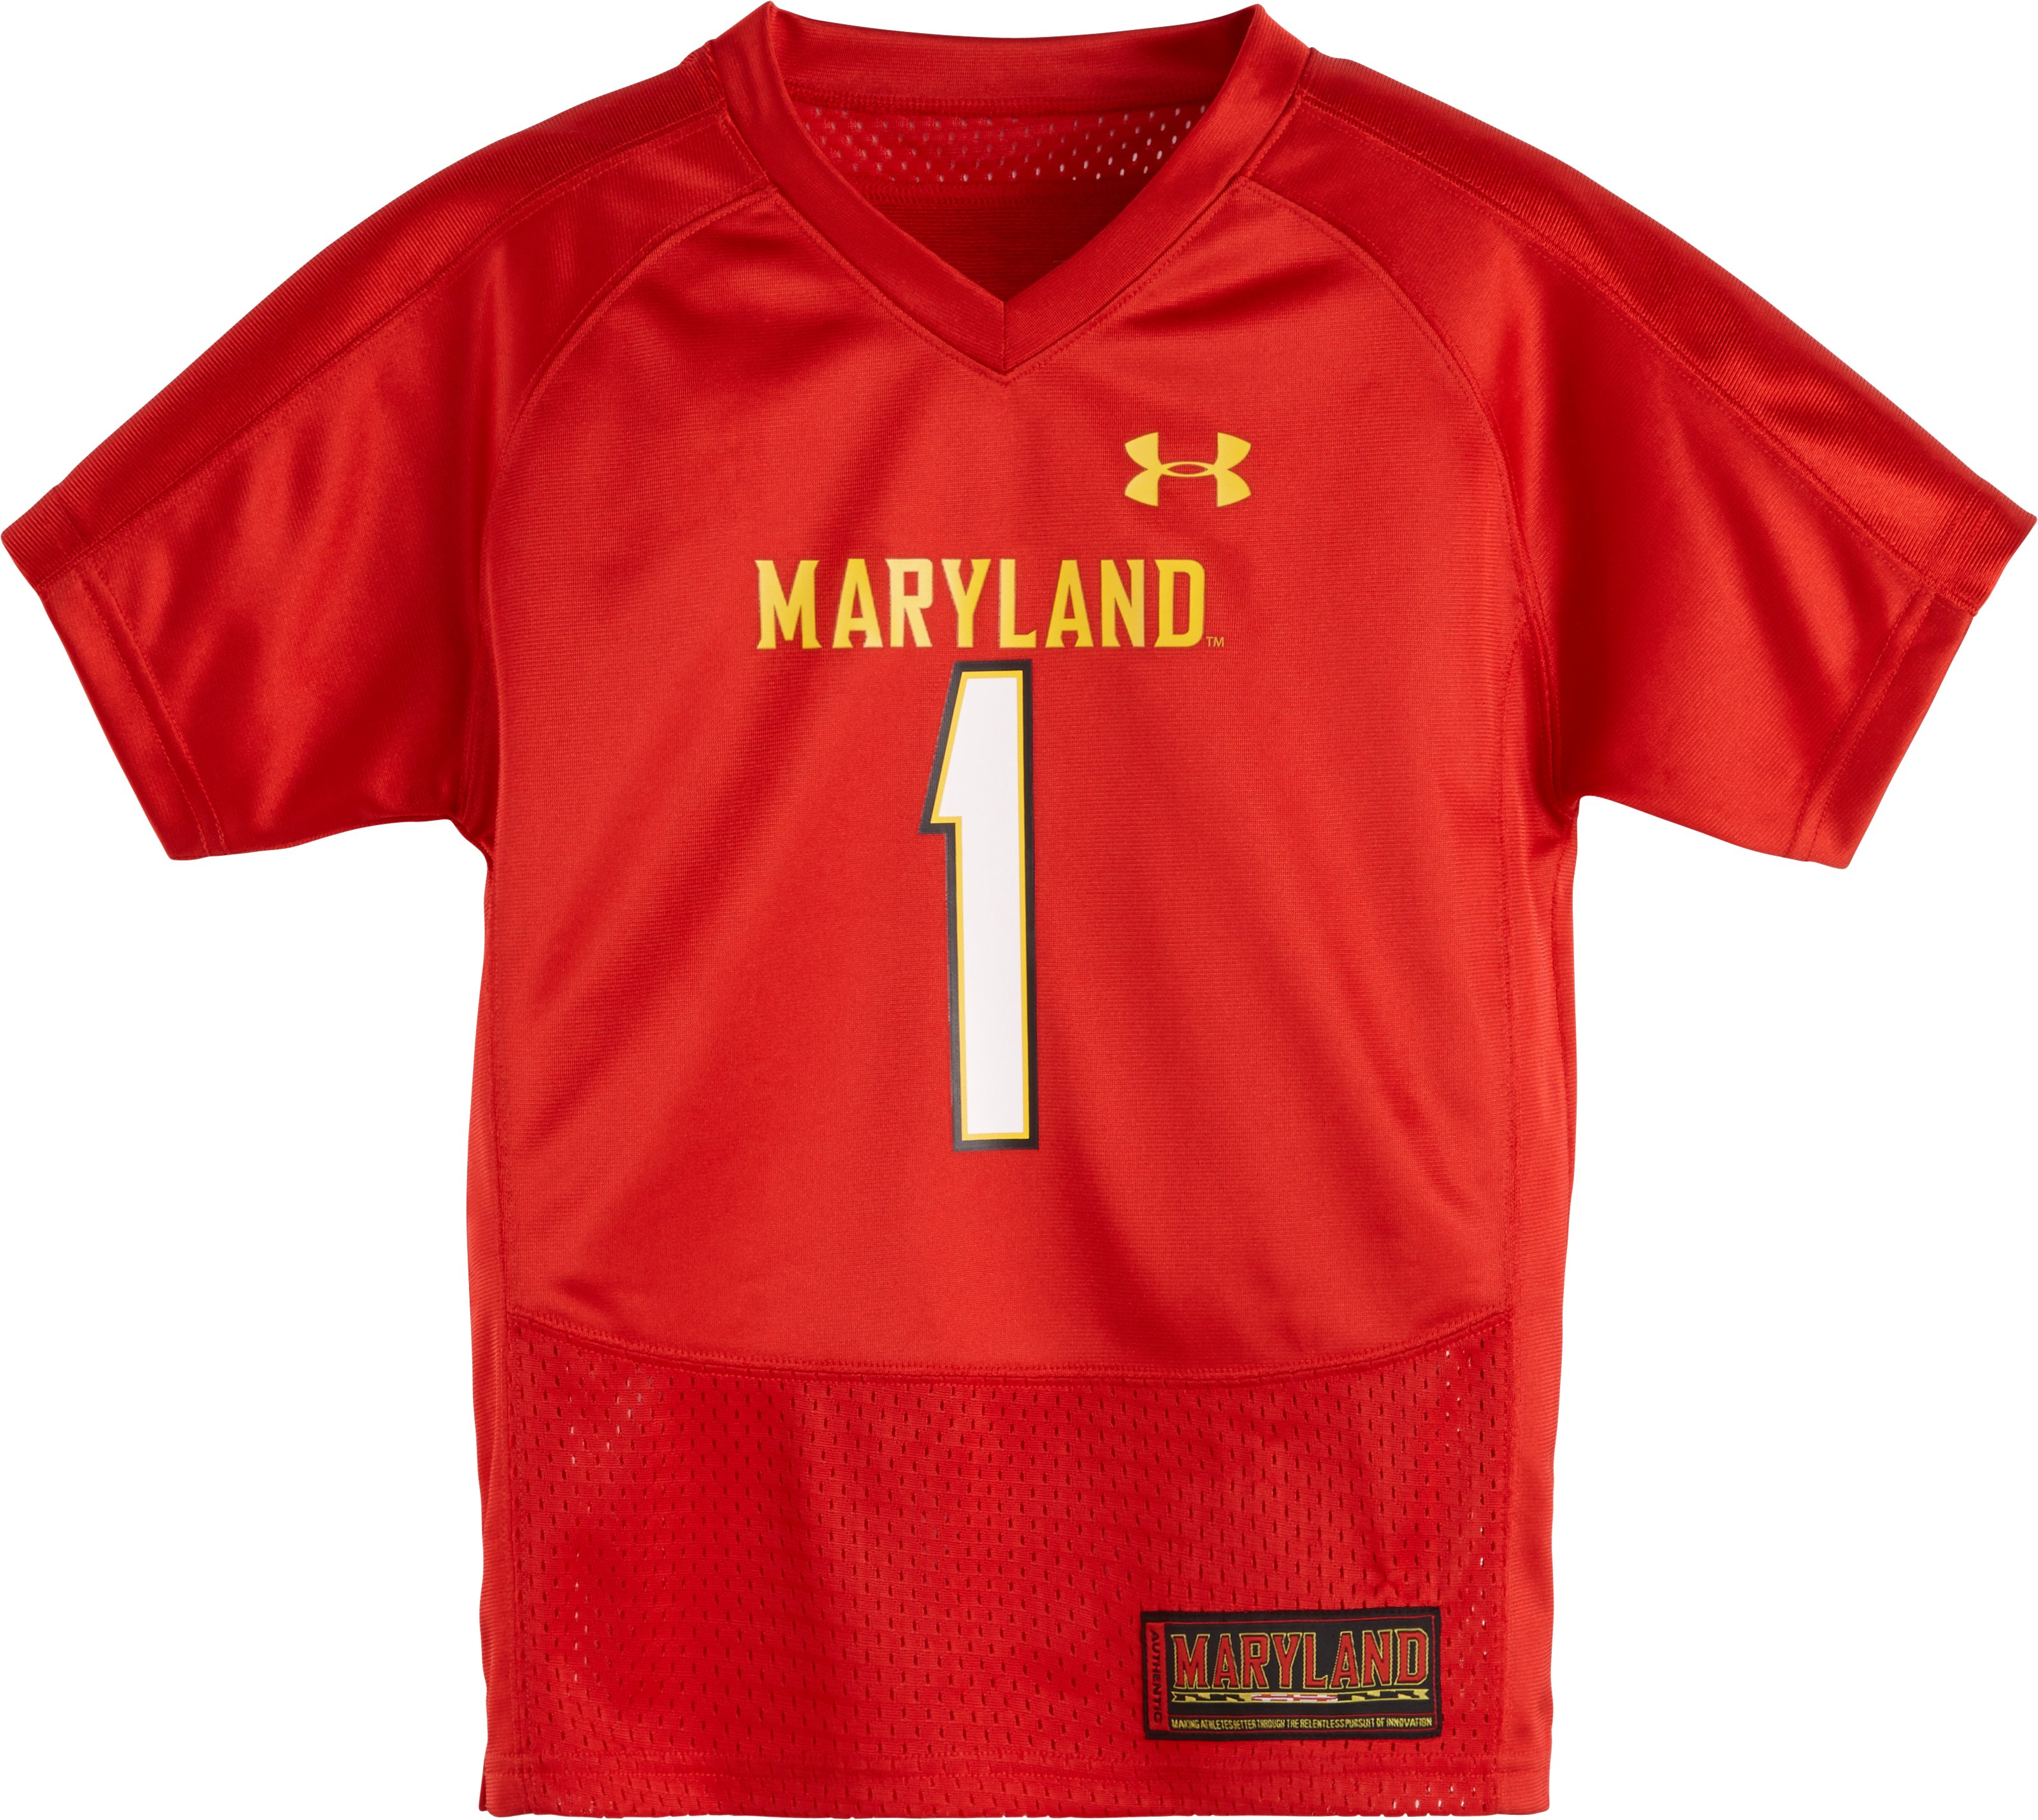 Boys' Pre-School Maryland Replica Jersey, Red, zoomed image